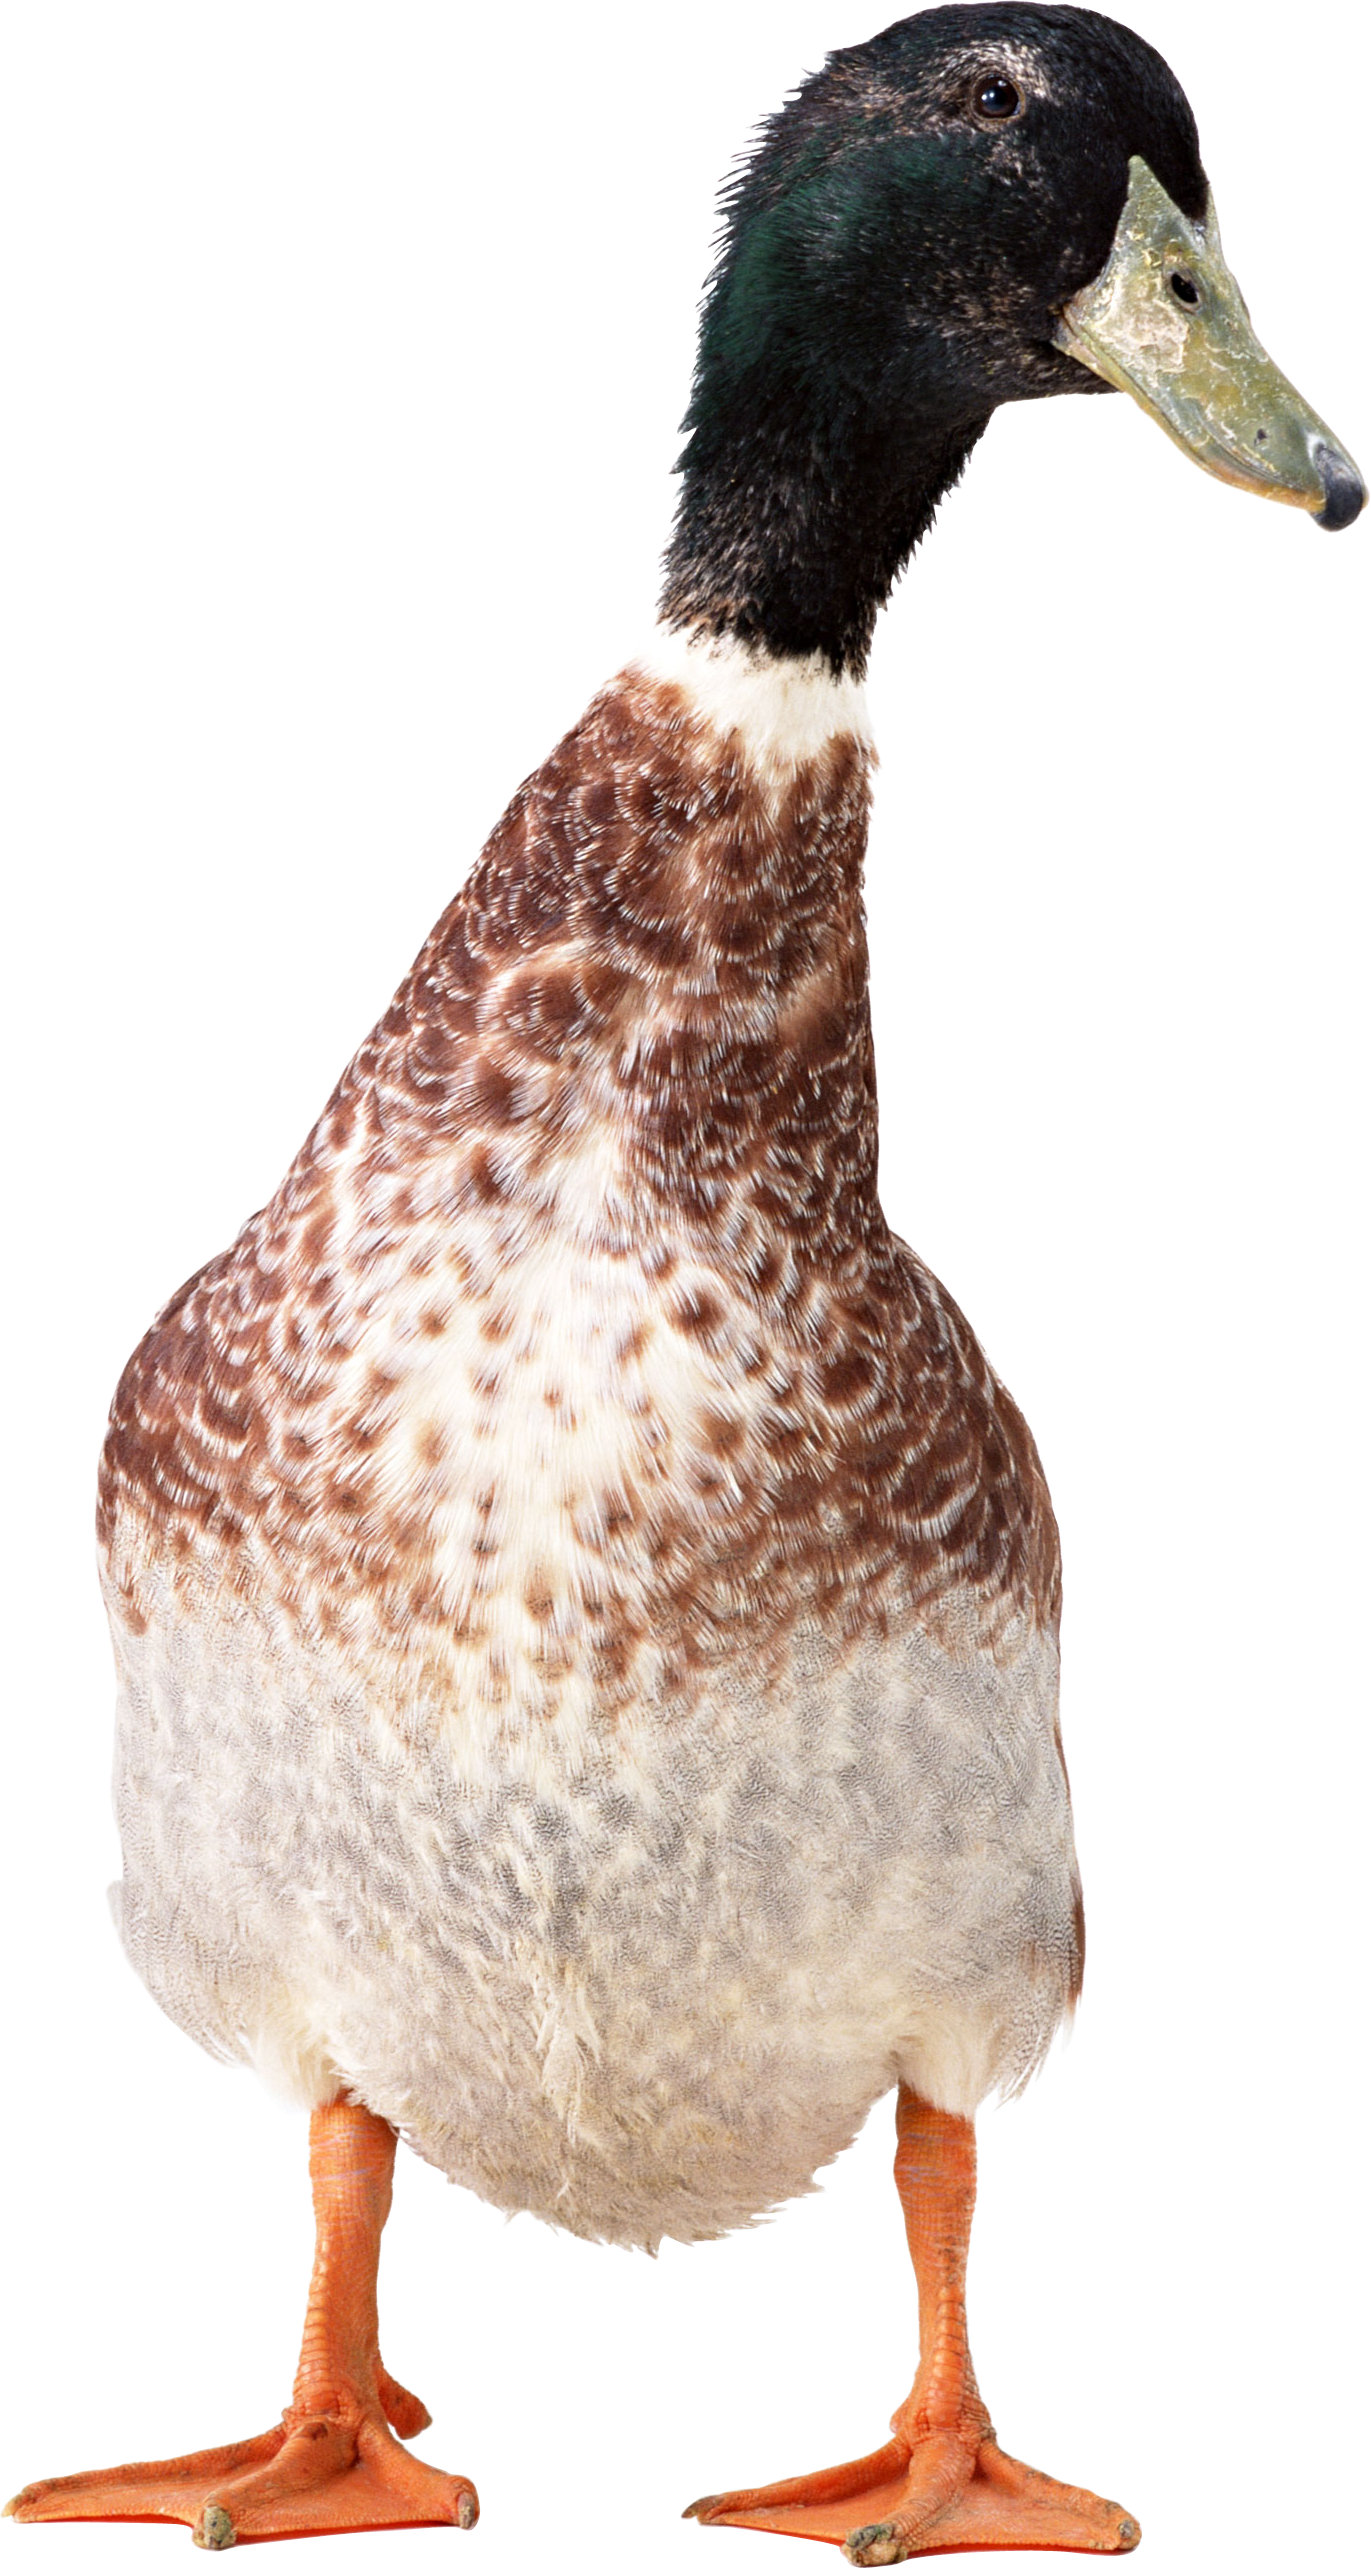 Duck PNG image free download